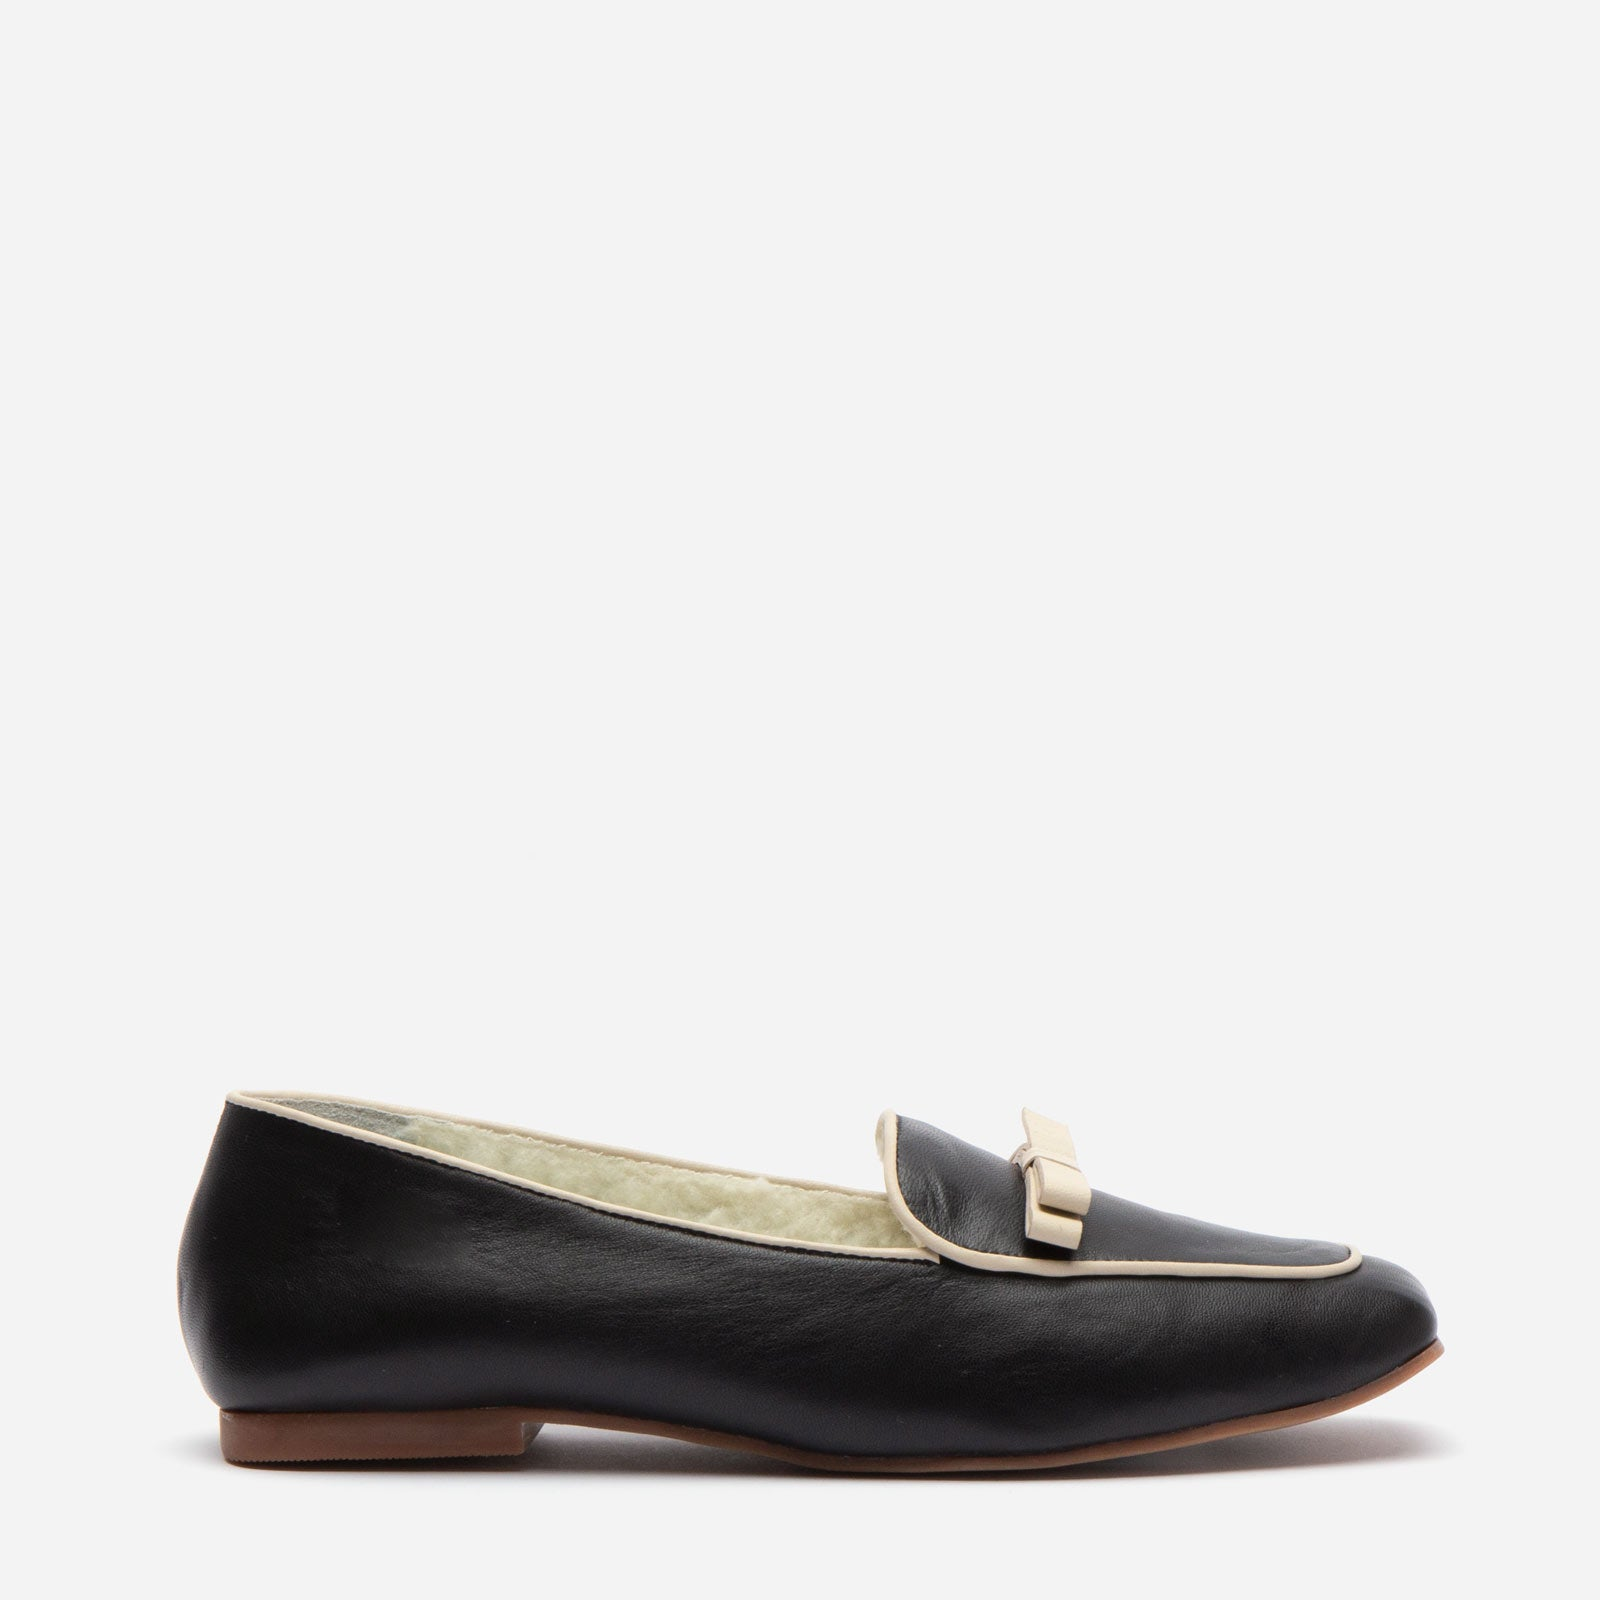 Suzanne Cozy Loafer Nappa Faux Shearling Black - Frances Valentine